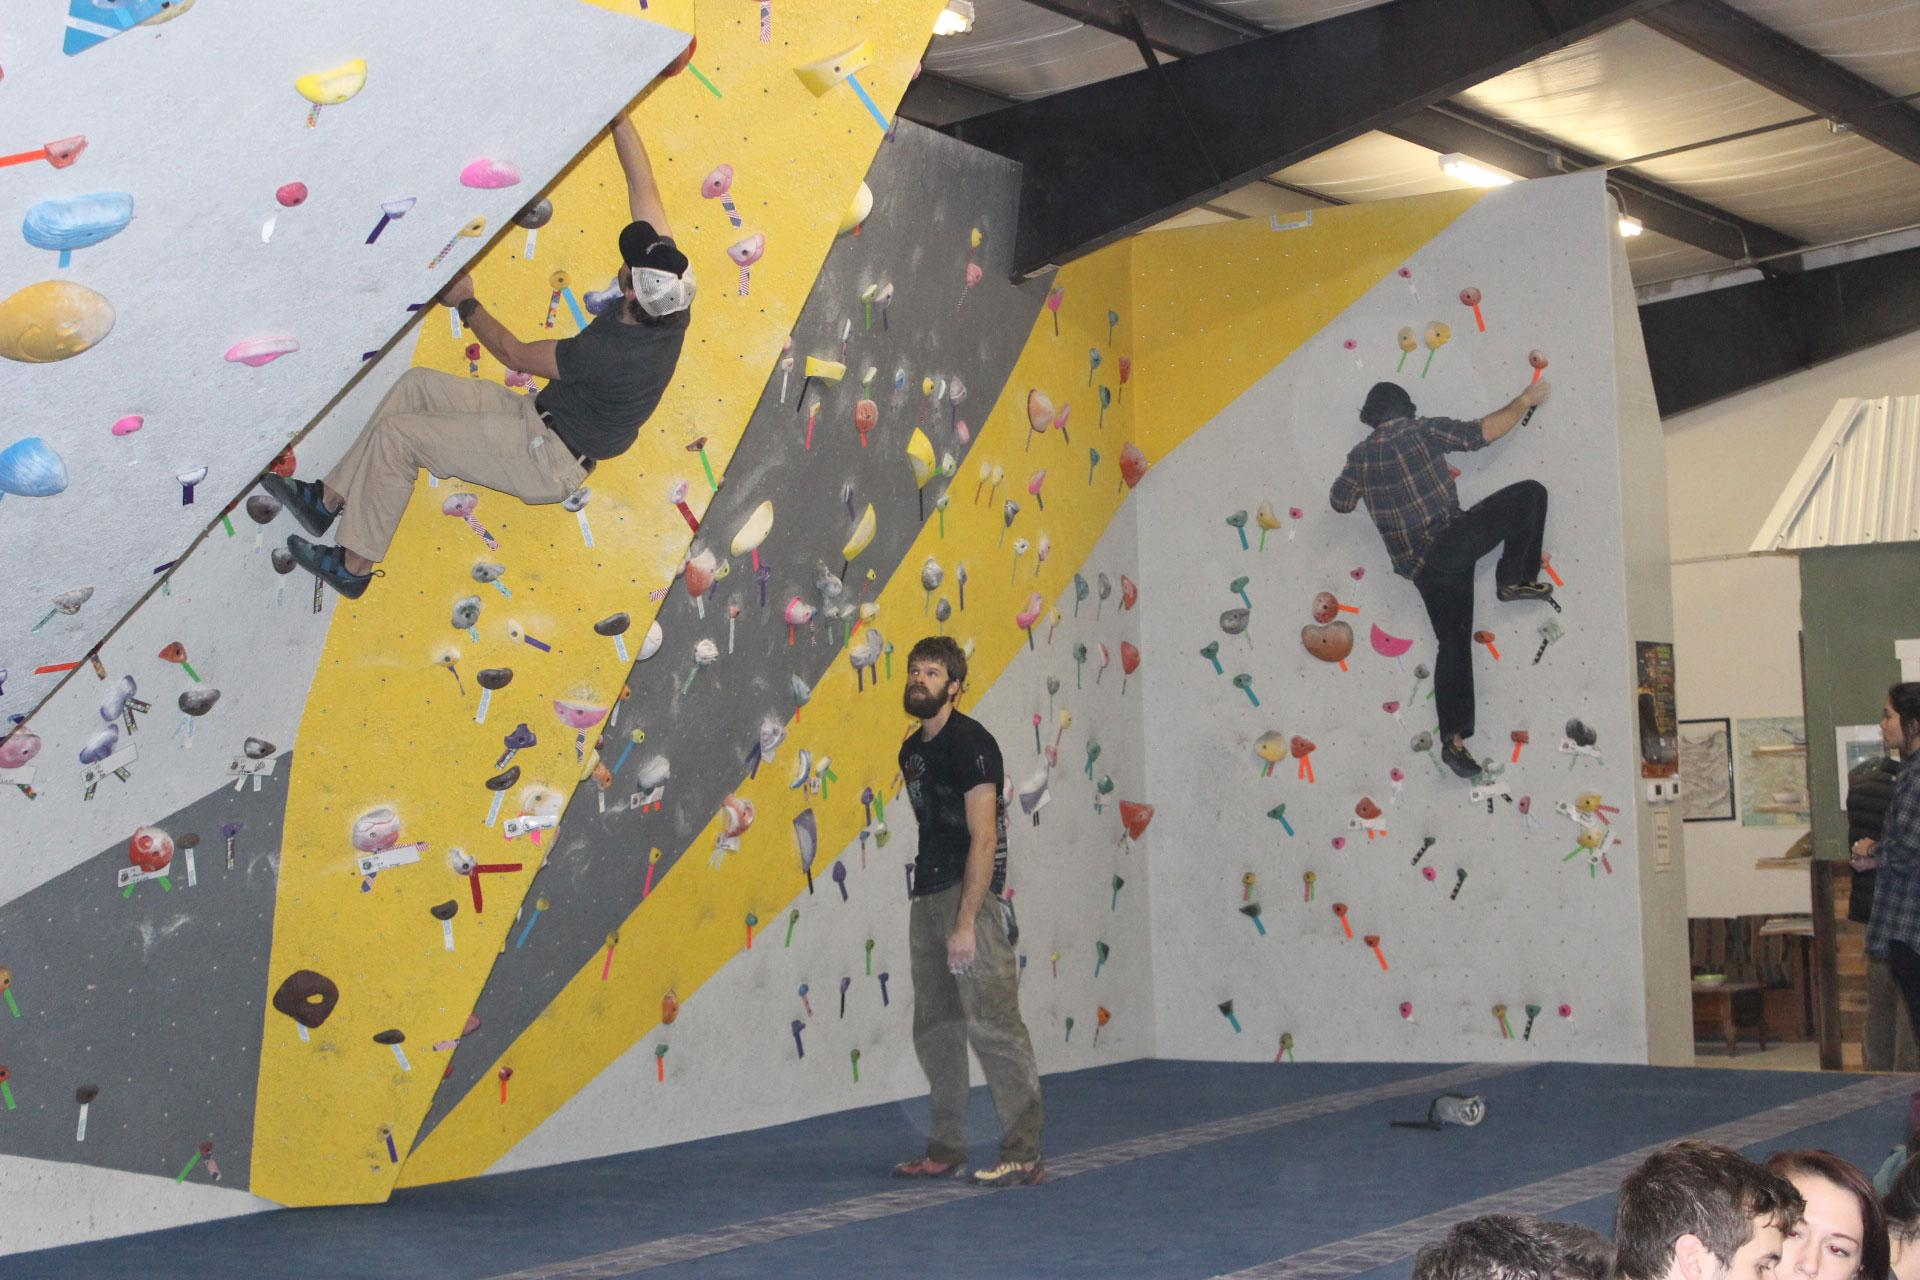 New climbing gym hosts grand opening - The Appalachian Online